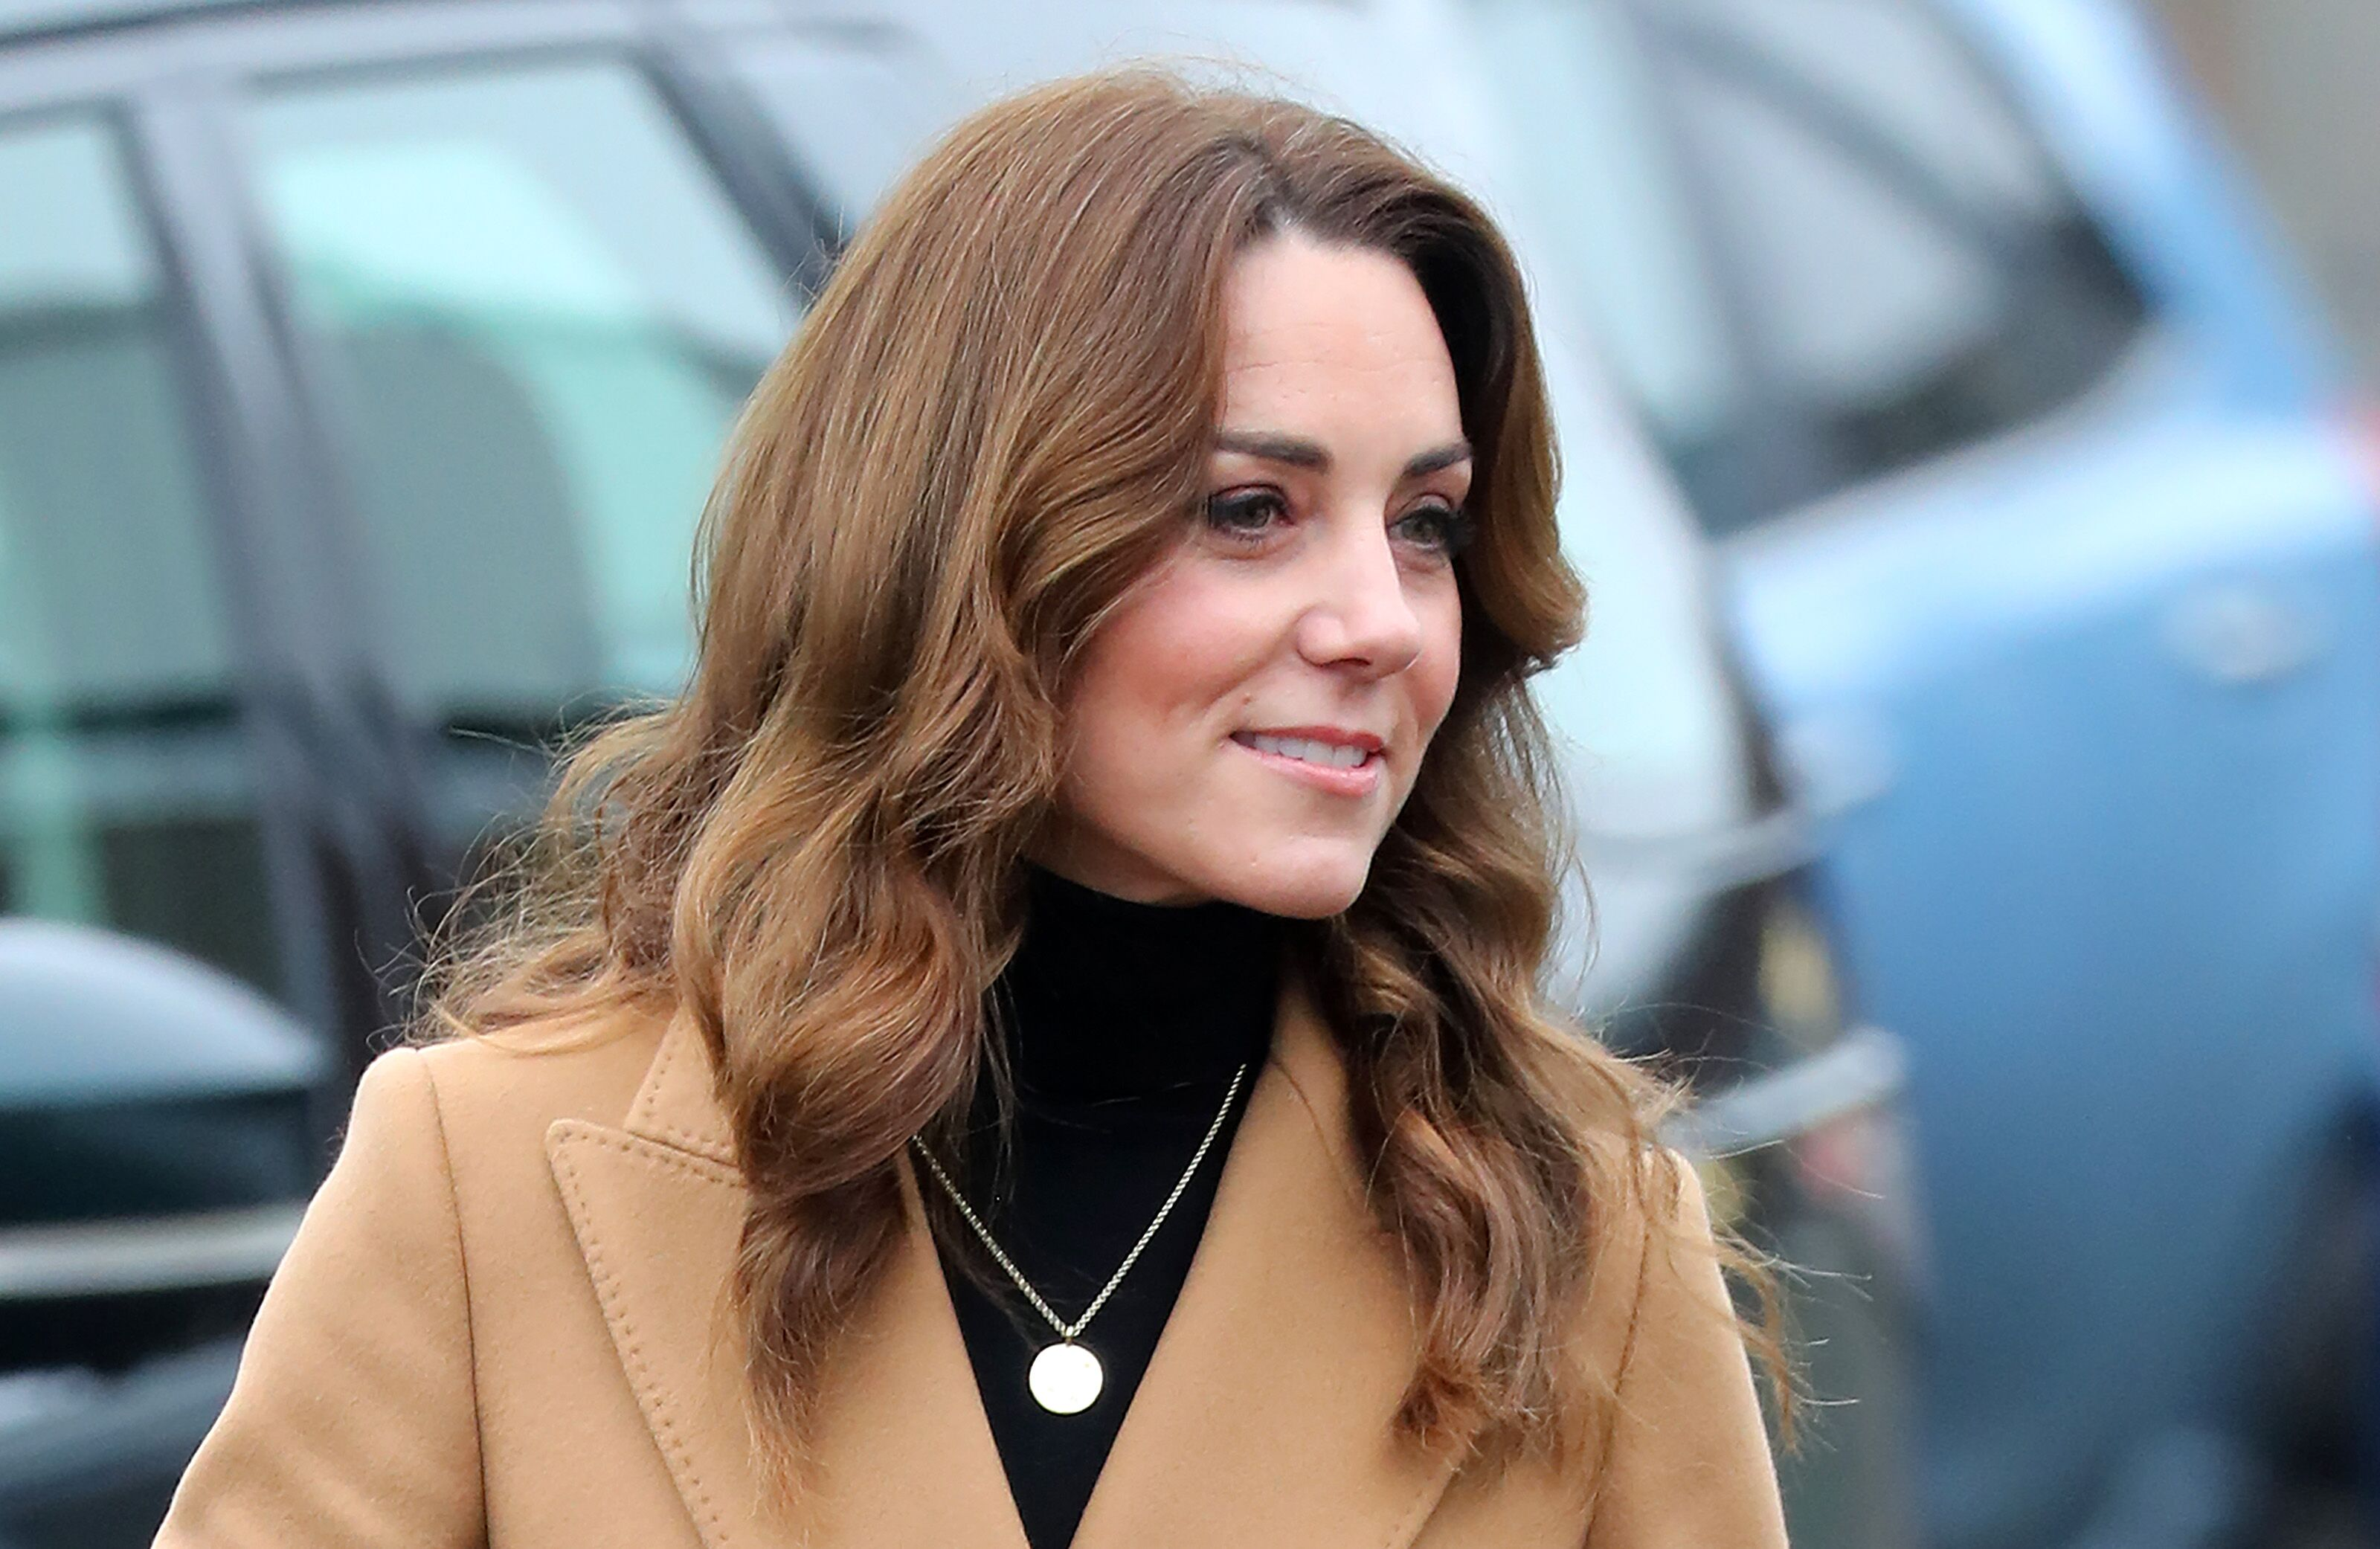 Duchess Kate at Ely and Careau Children's Centre on January 22, 2020, in Cardiff, Wales | Photo: Chris Jackson/Getty Images